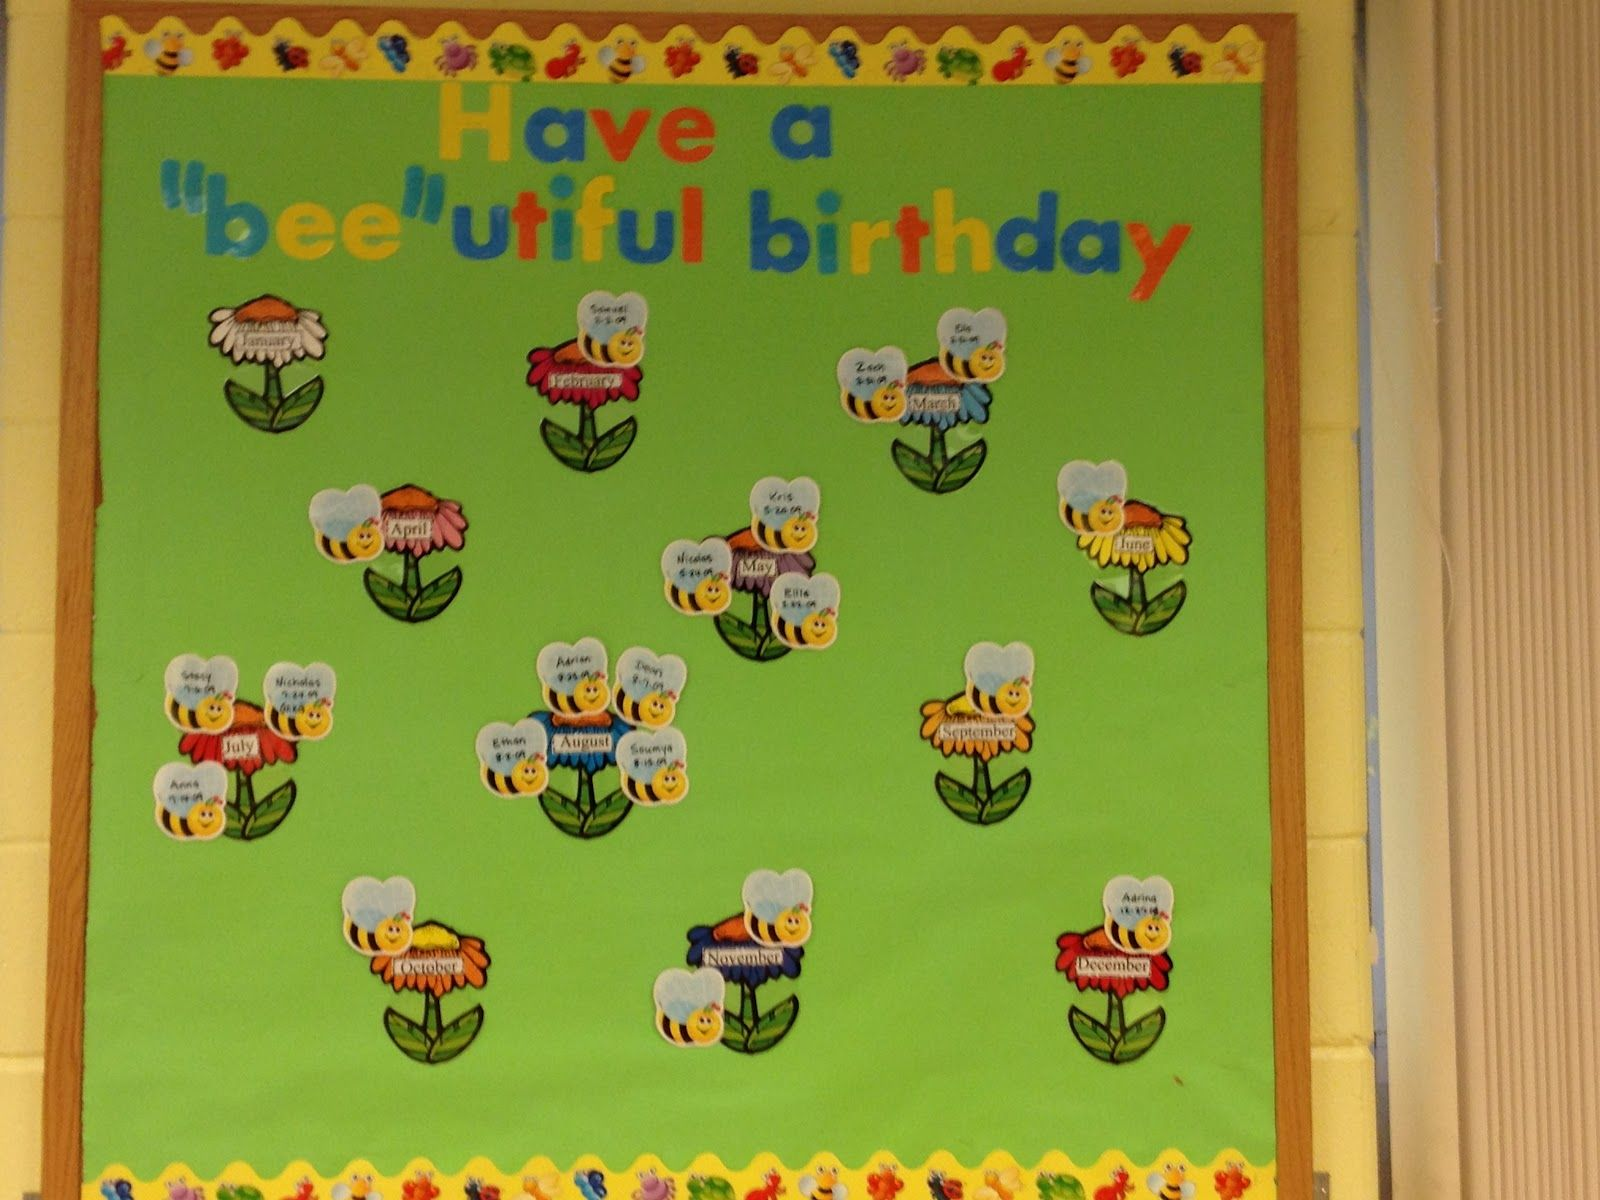 Preschool Bulletin Board Ideas . And With Great Colorful Birthday